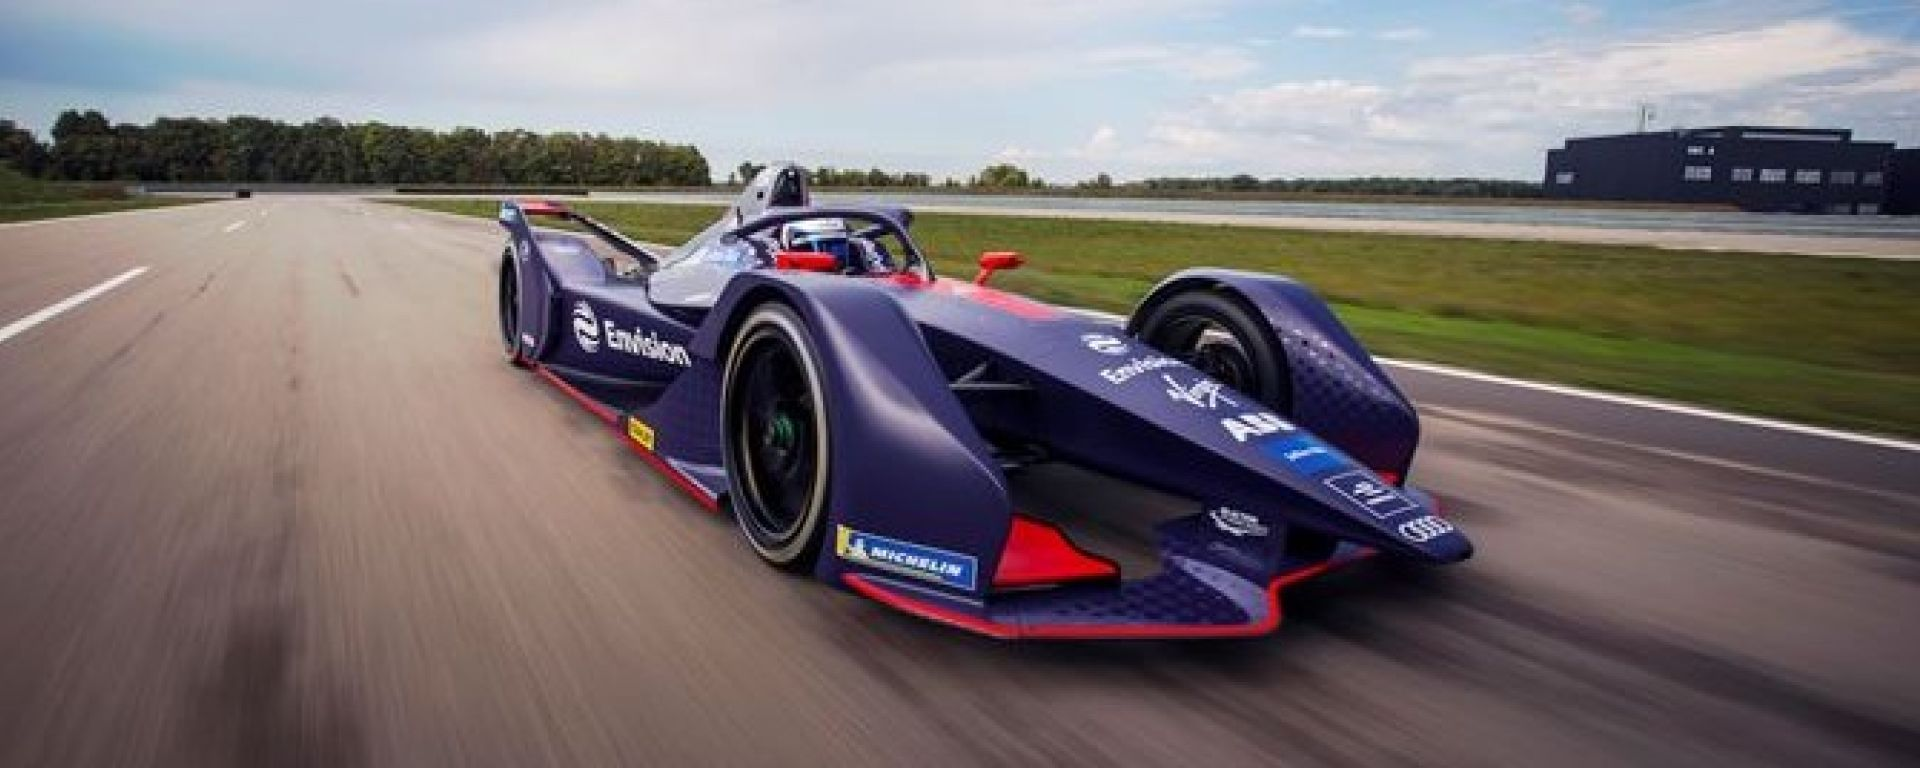 Formula E 2019: Envision Virgin Racing